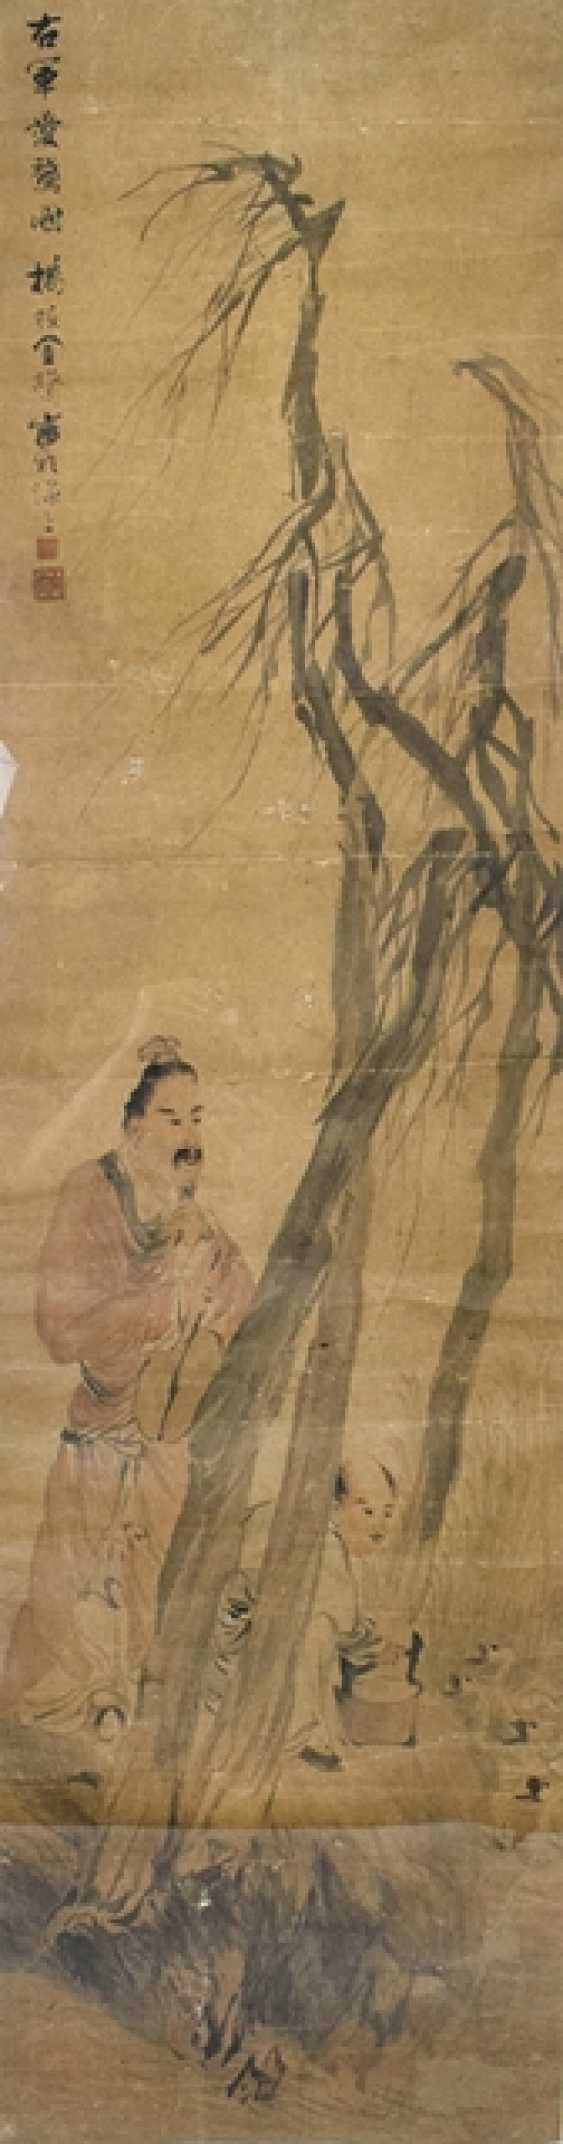 Painting with presentation of the Wang Xizhi at the goose pond - photo 1